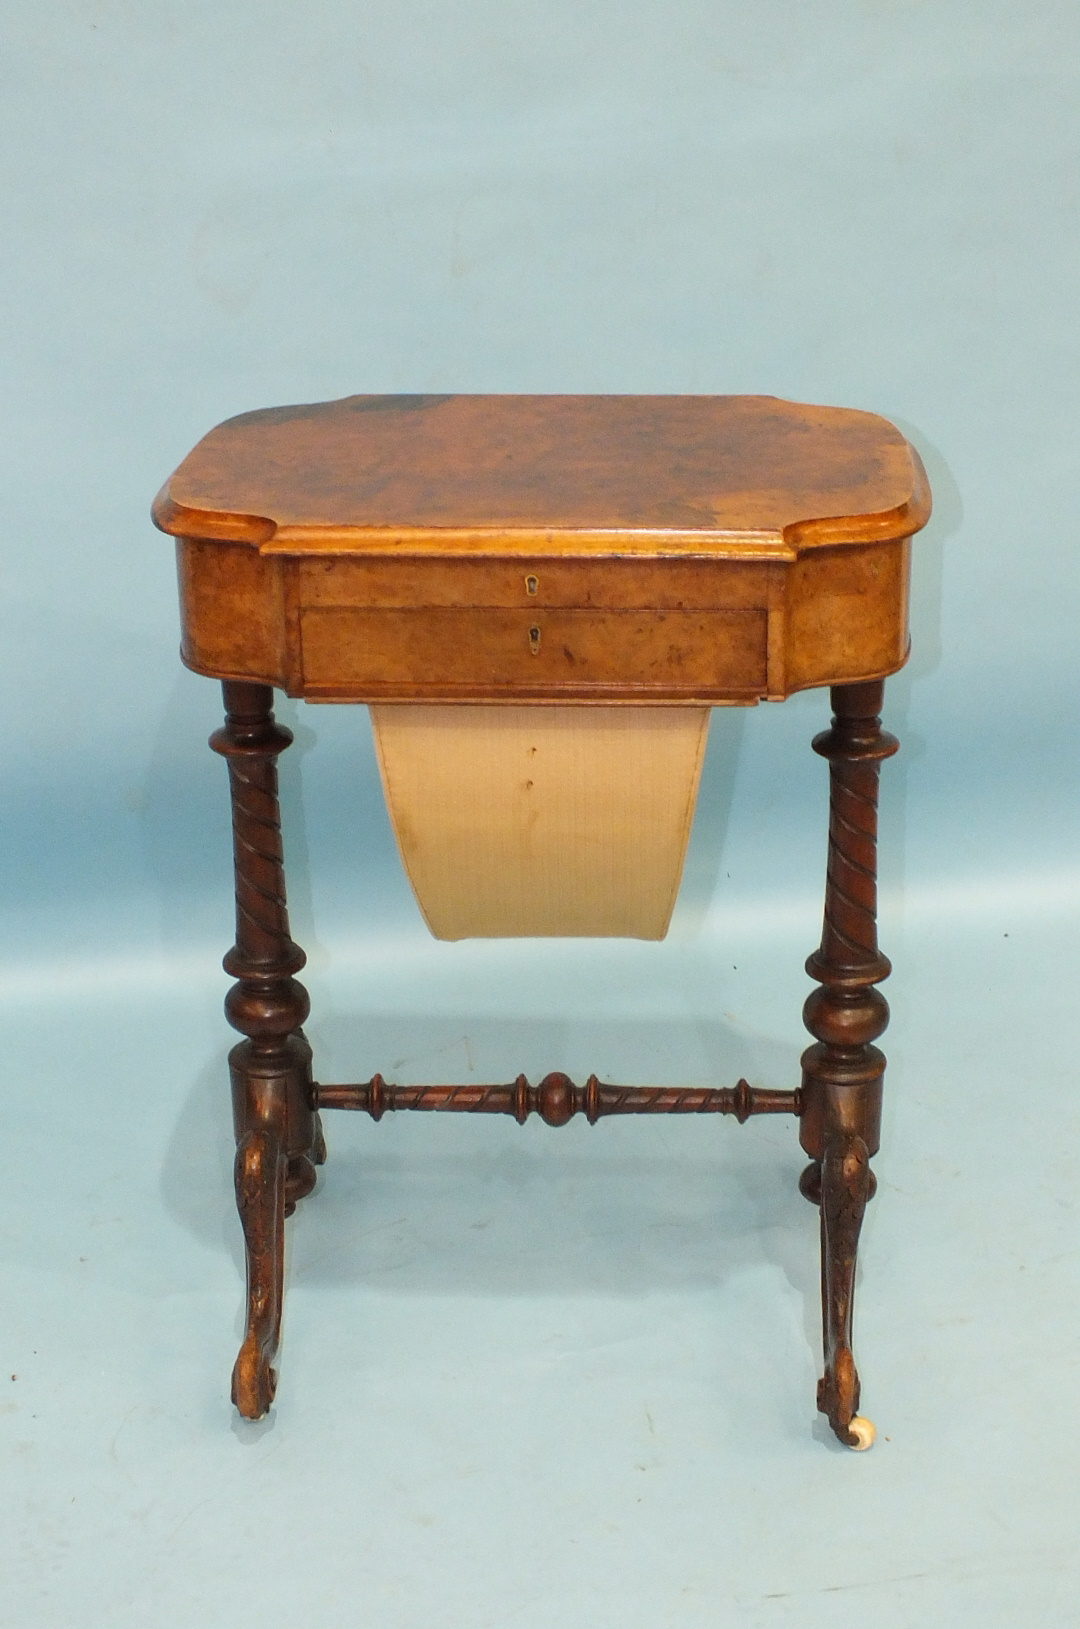 Lot 63 - A Victorian walnut workbox and writing desk, the lift lid revealing a writing surface above a fitted